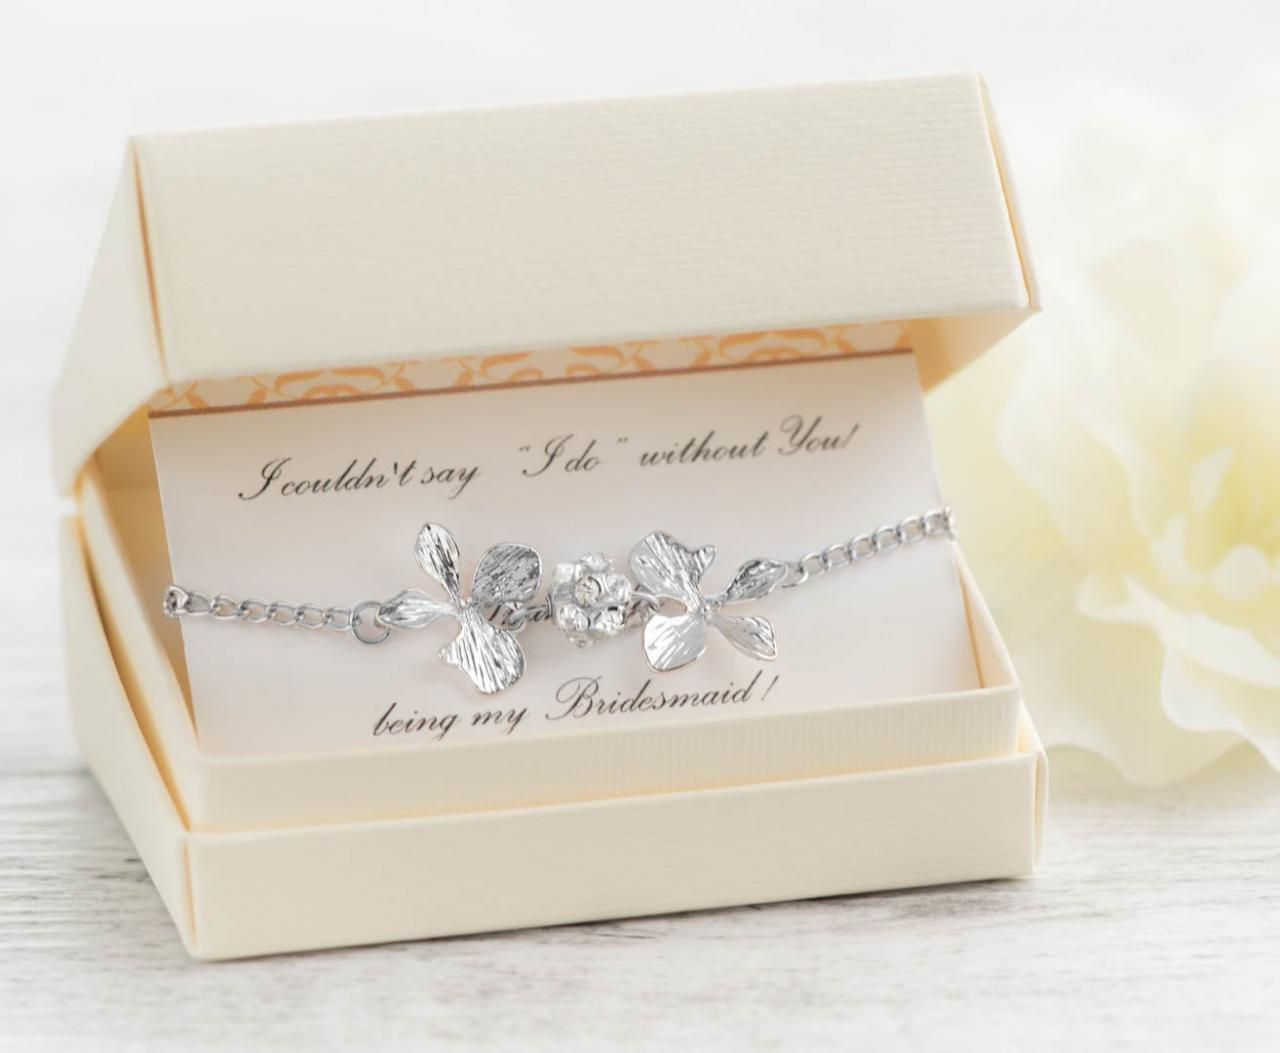 grey wedding set of 7/8/9/10 silver bridesmaids with silver orchid bracelet-rhinestone jewelry set of 8 bracelets with i do without you note